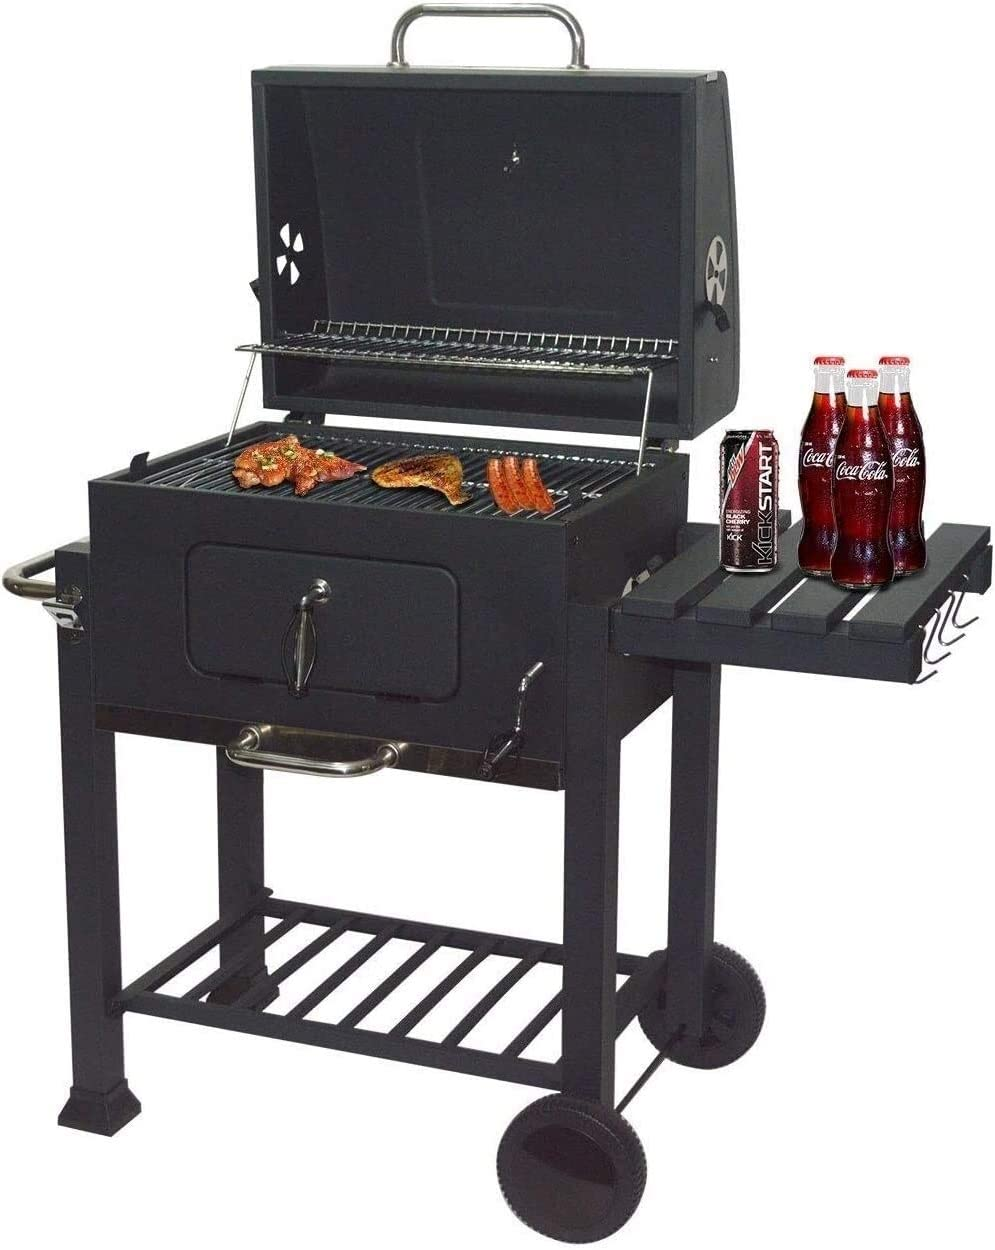 What are the best grills on the market?